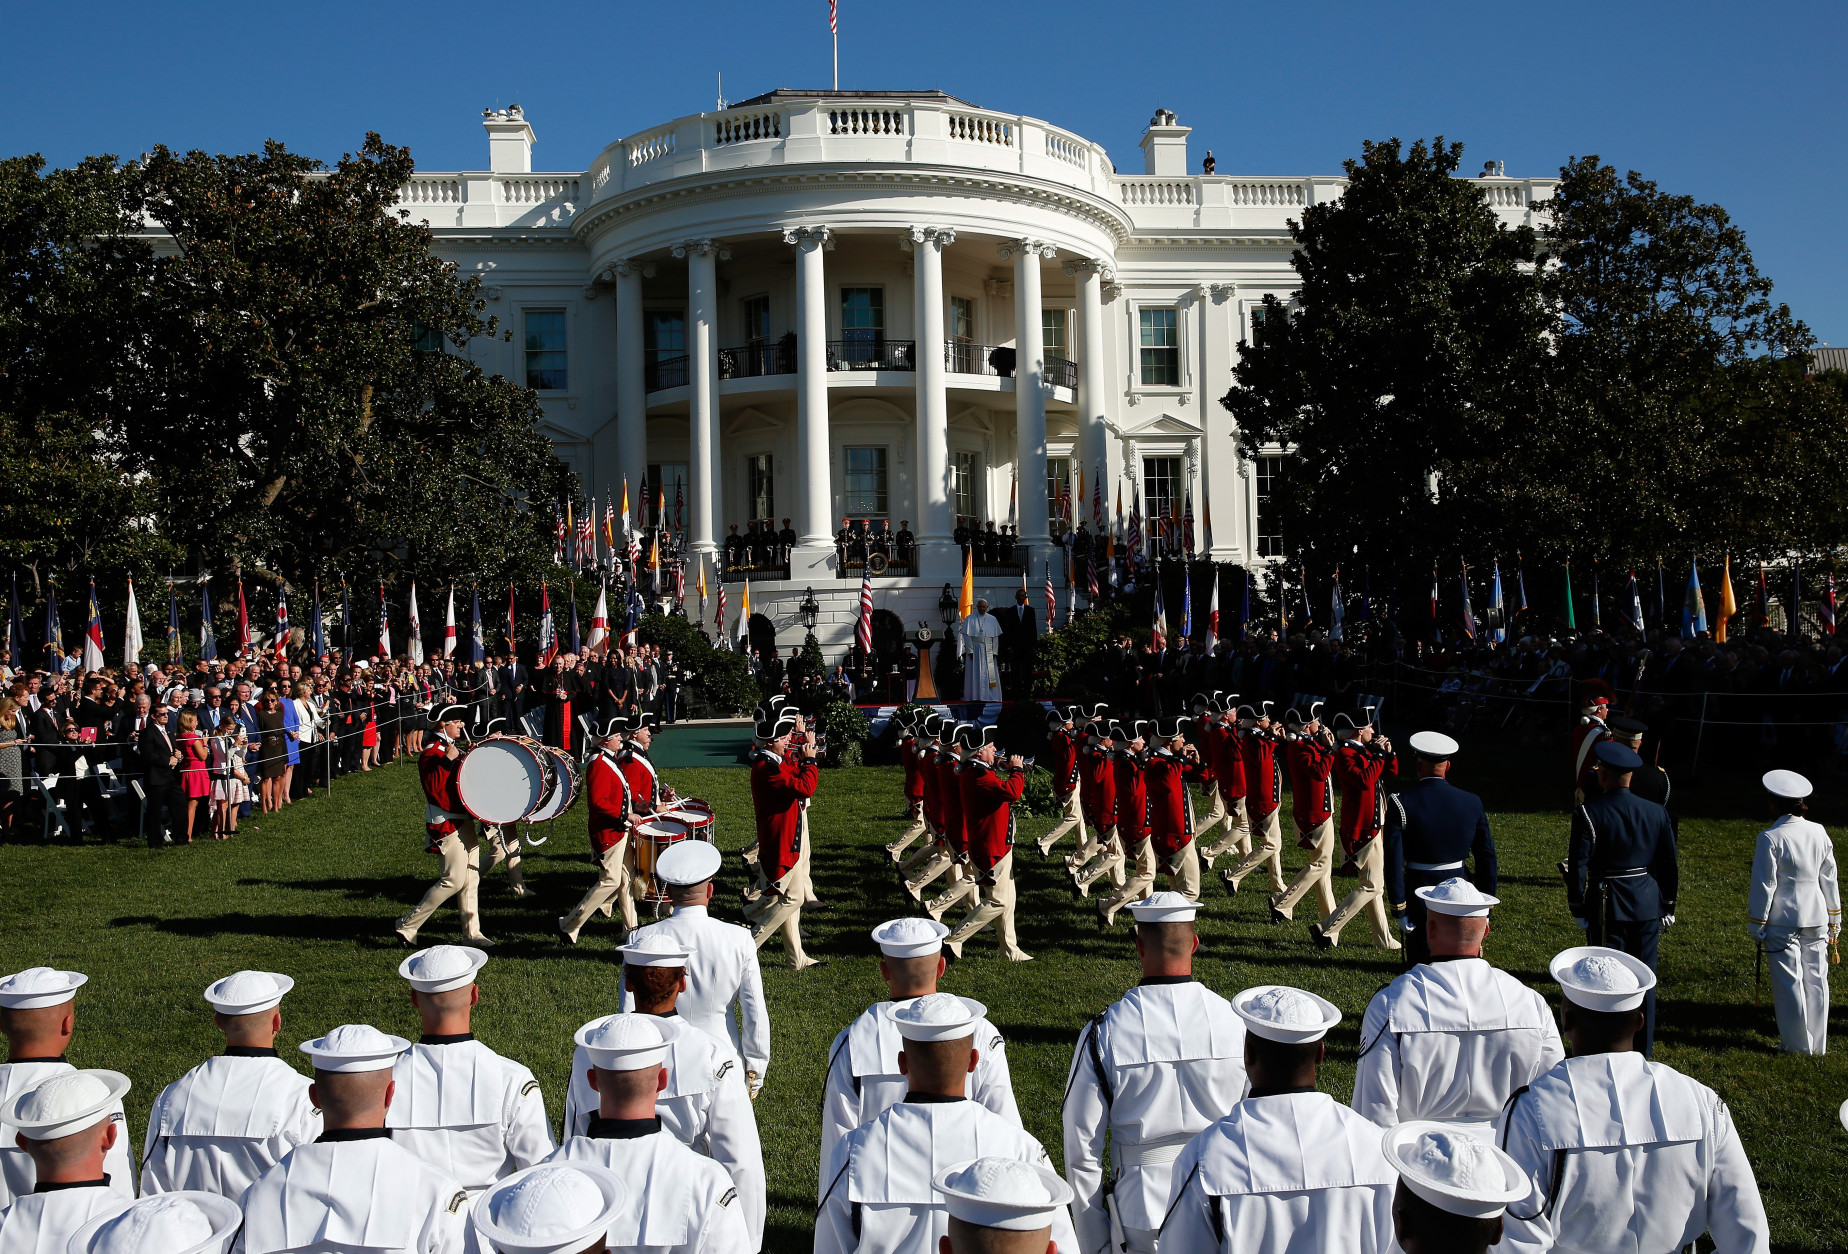 WASHINGTON, DC - SEPTEMBER 23:  Pope Francis and U.S. President Barack Obama review the U.S. Army's Old Guard Fife and Drum Corps during the arrival ceremony at the White House on September 23, 2015 in Washington, DC. The Pope begins his first trip to the United States at the White House followed by a visit to St. Matthew's Cathedral, and will then hold a Mass on the grounds of the Basilica of the National Shrine of the Immaculate Conception.  (Photo by Win McNamee/Getty Images)